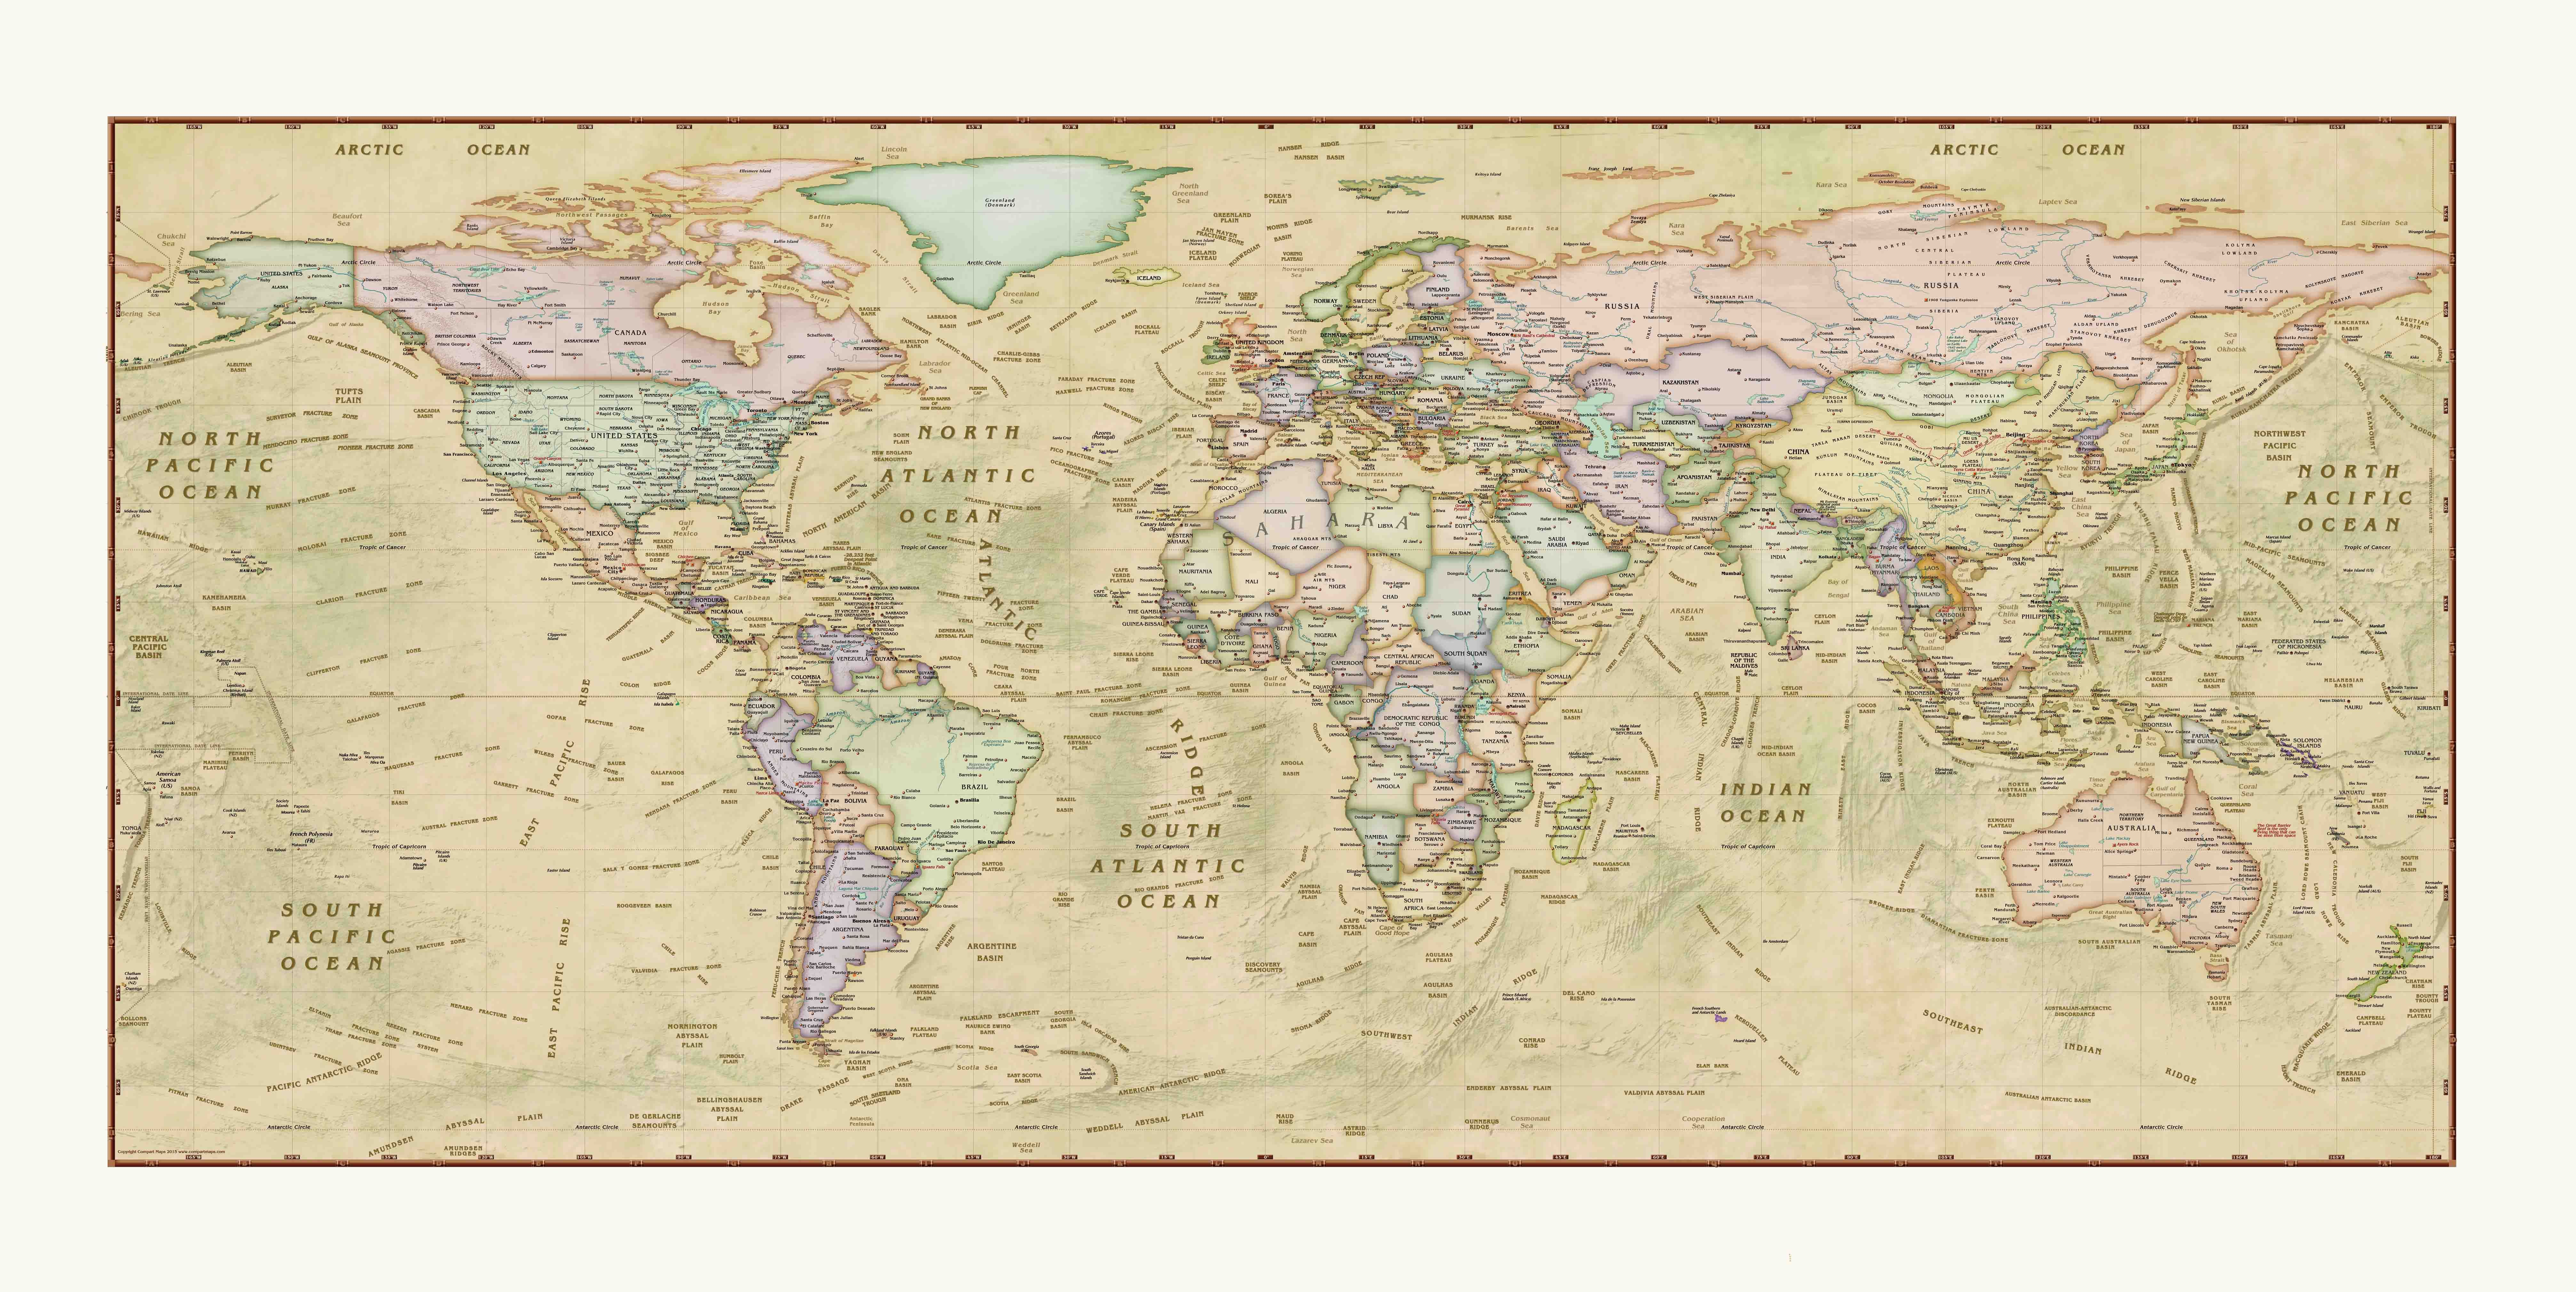 Decorative antique world wall map europe centered zoom maps decorative antique world wall map europe centered zoom gumiabroncs Gallery